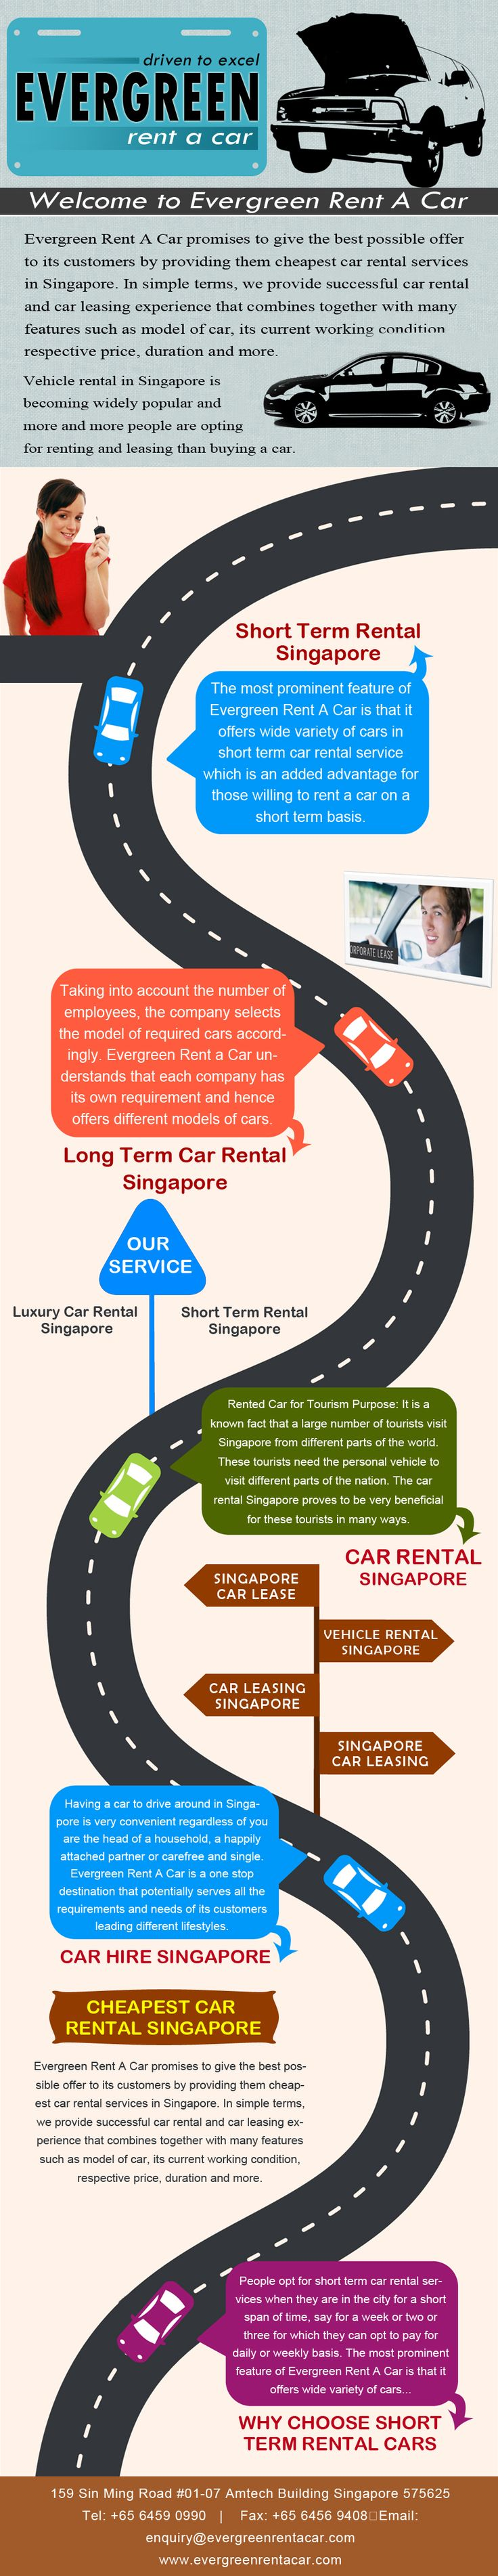 Best 25 budget car hire ideas on pinterest budget car rental rent games and ups locations